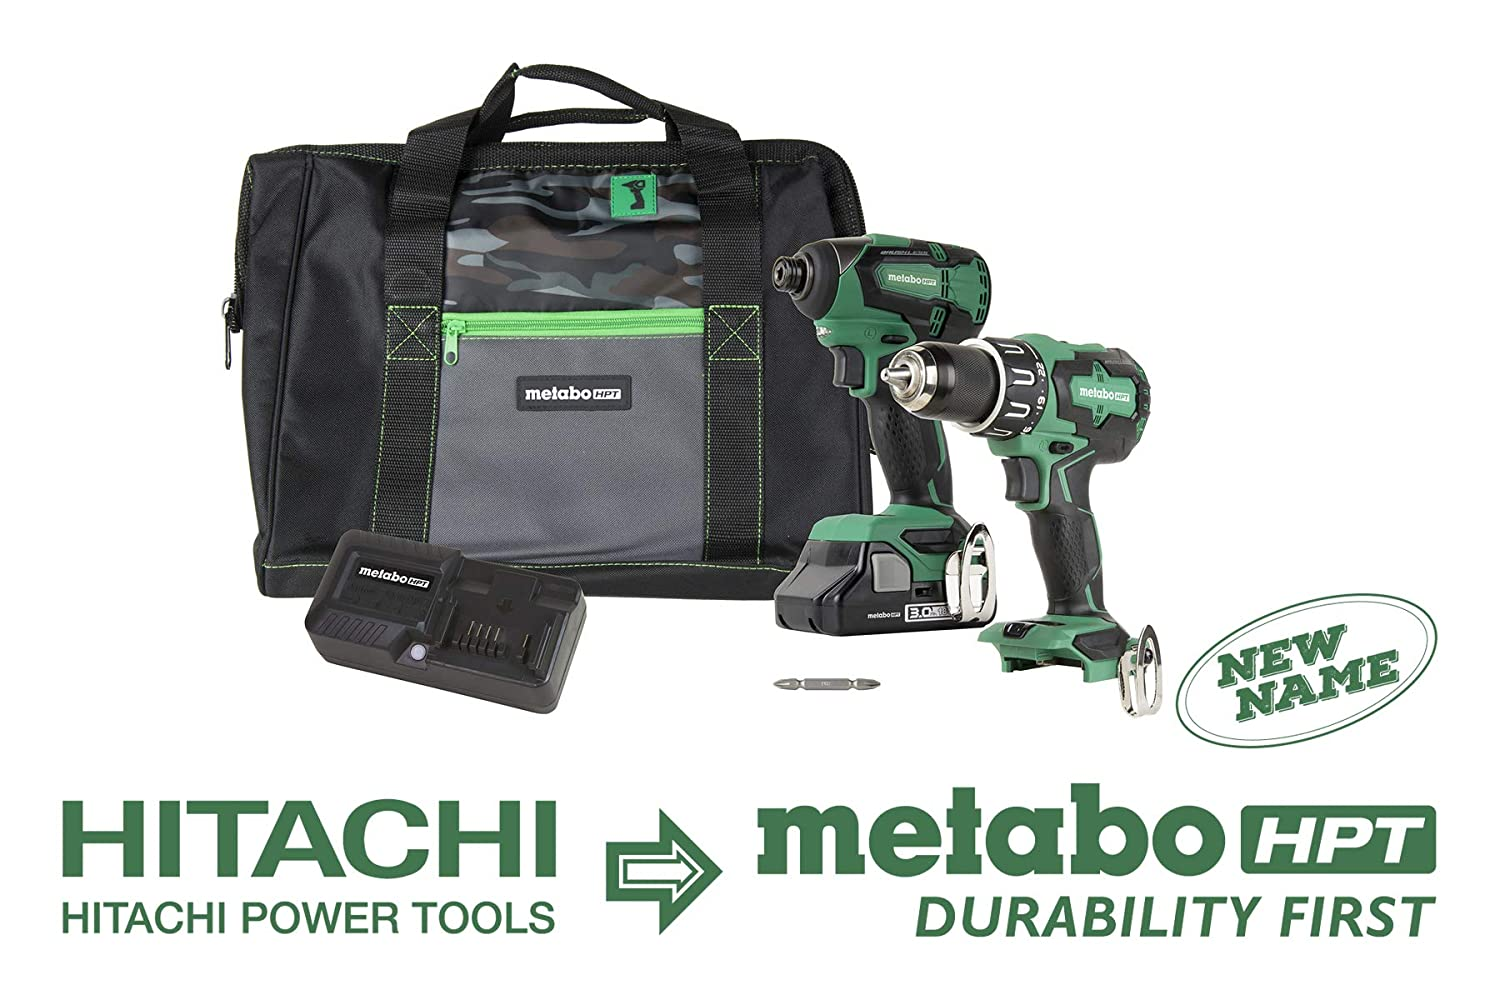 Metabo HPT KC18DBFL2S 18V Cordless Brushless Hammer Drill and Impact Driver Combo Kit, 1 – Compact 3.0Ah Lithium Ion Battery, Variable Speed Trigger, Belt Hook, LED Light, Lifetime Tool Warranty